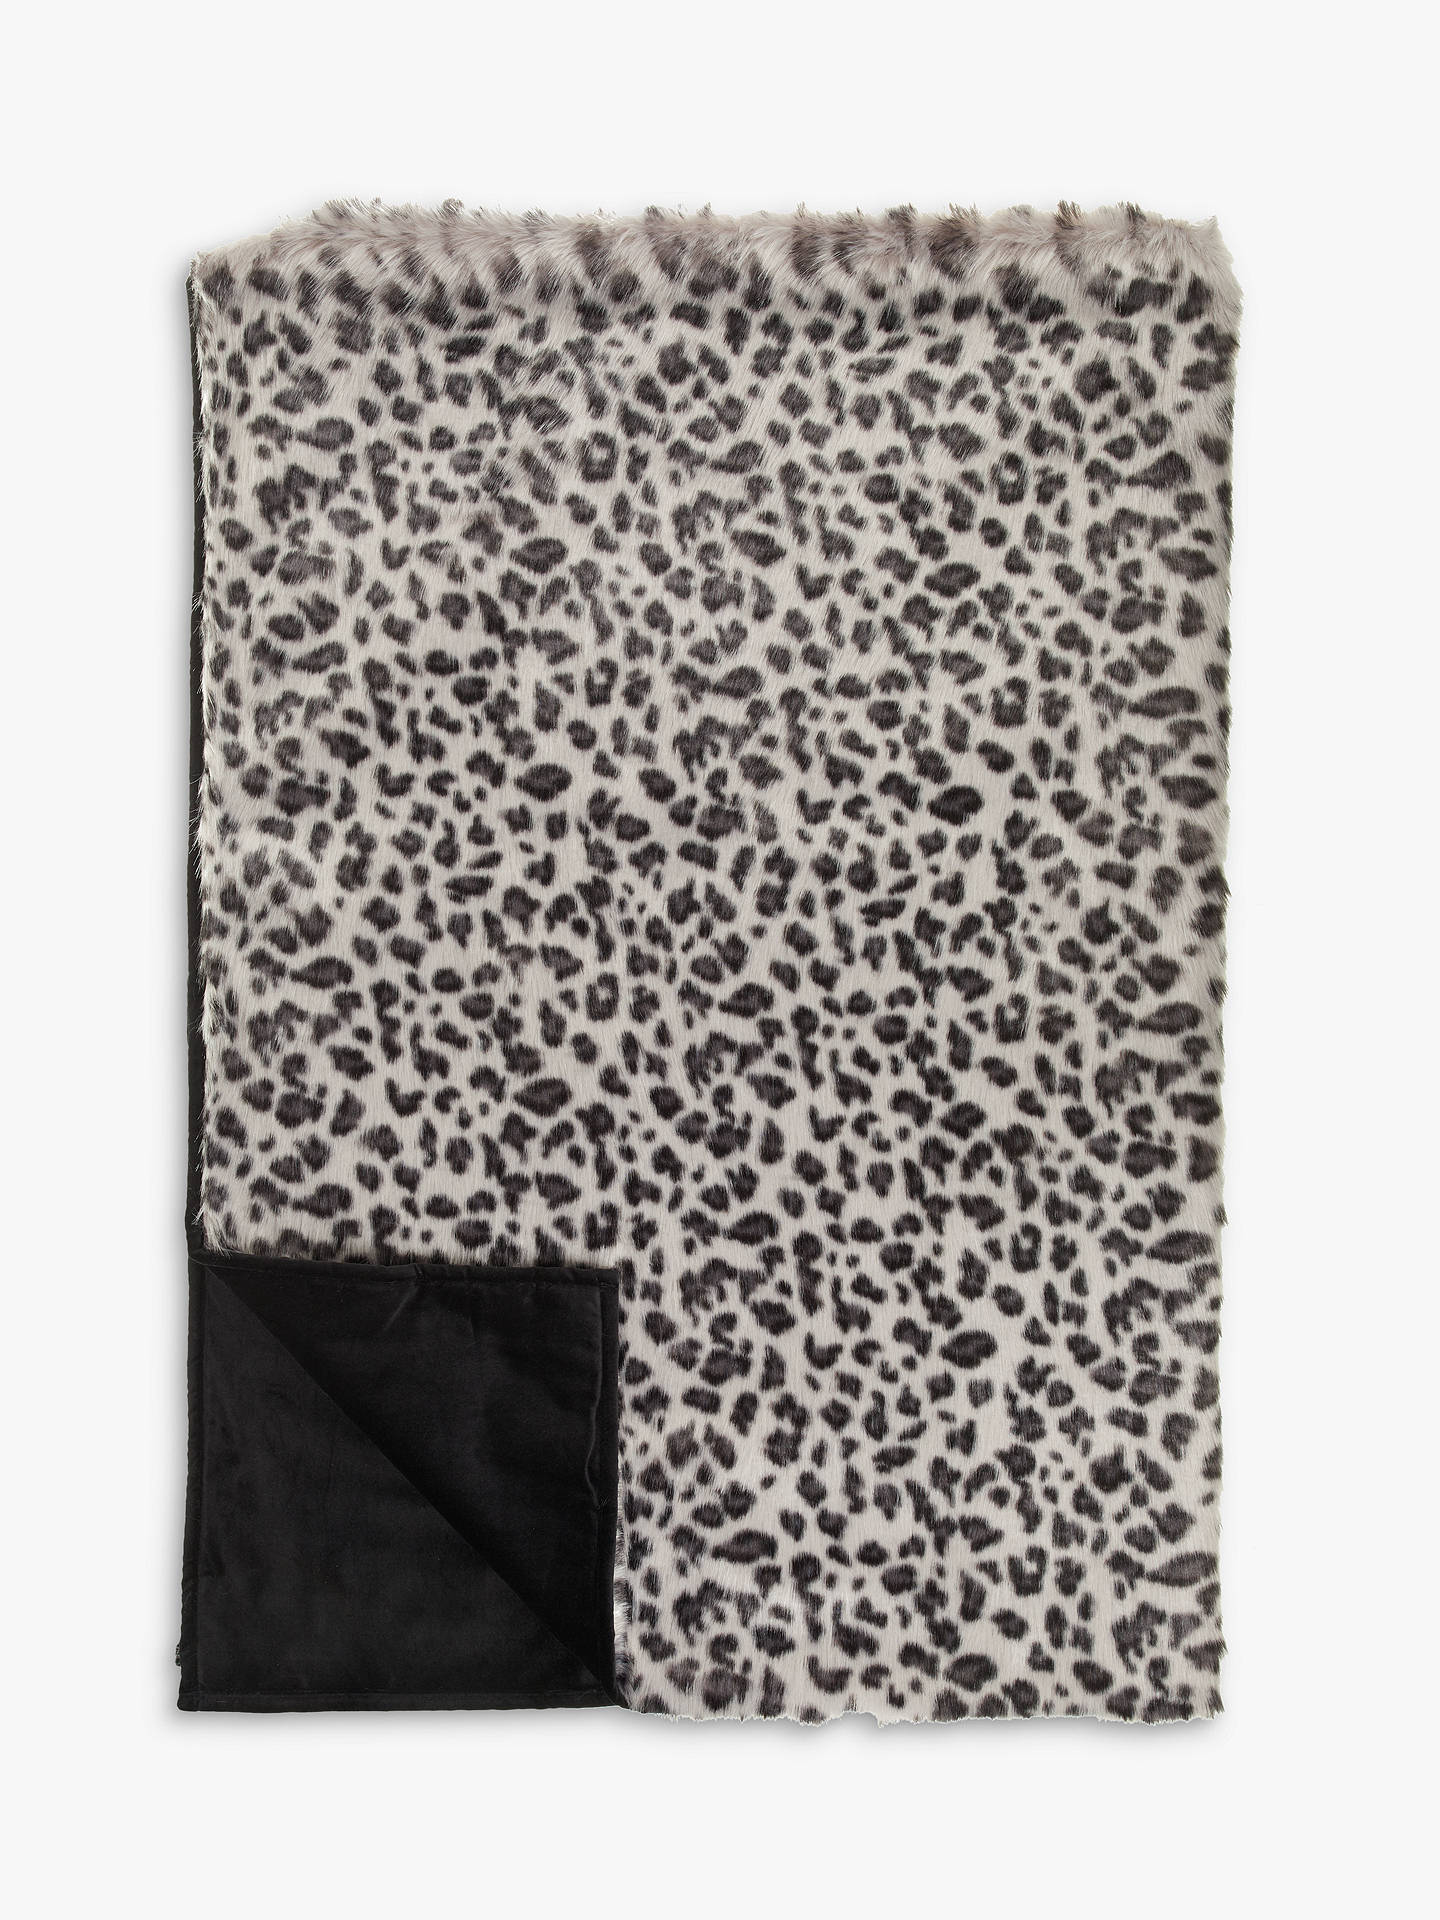 BuyHelene Berman Grey Leopard Faux Fur Throw Online at johnlewis.com